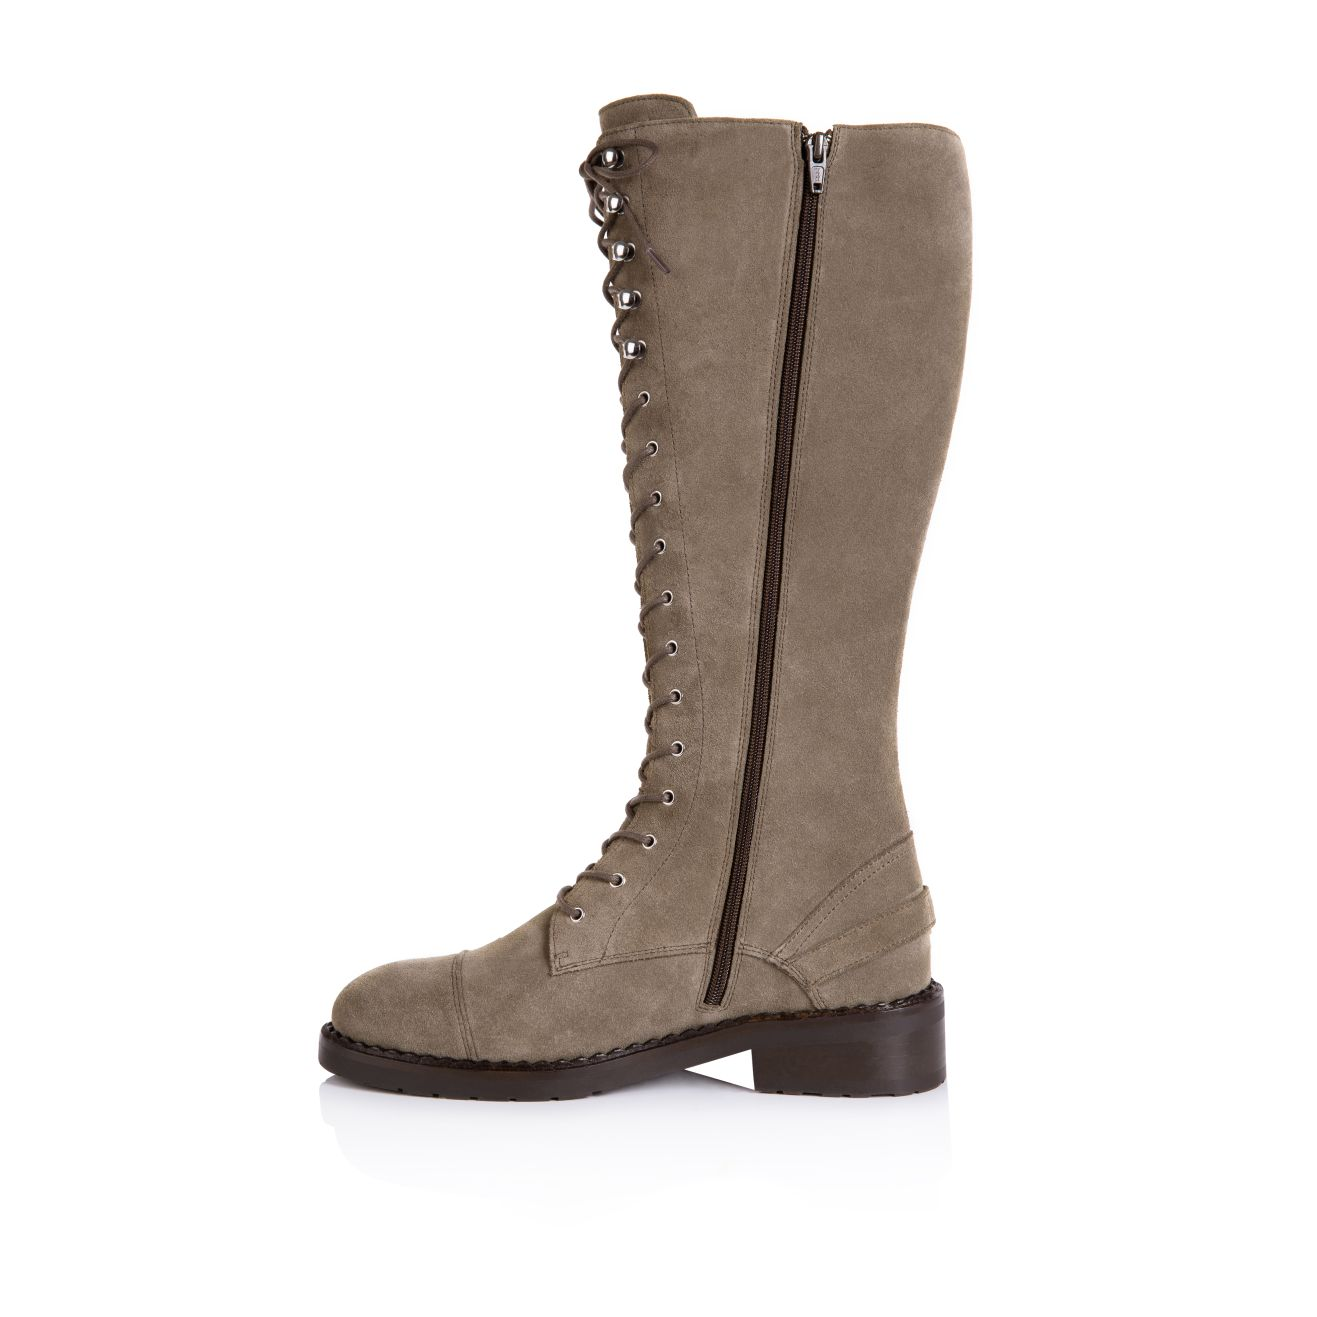 MARIANNE: TAUPE SUEDE KNEE HIGH LACE UP BOOTS